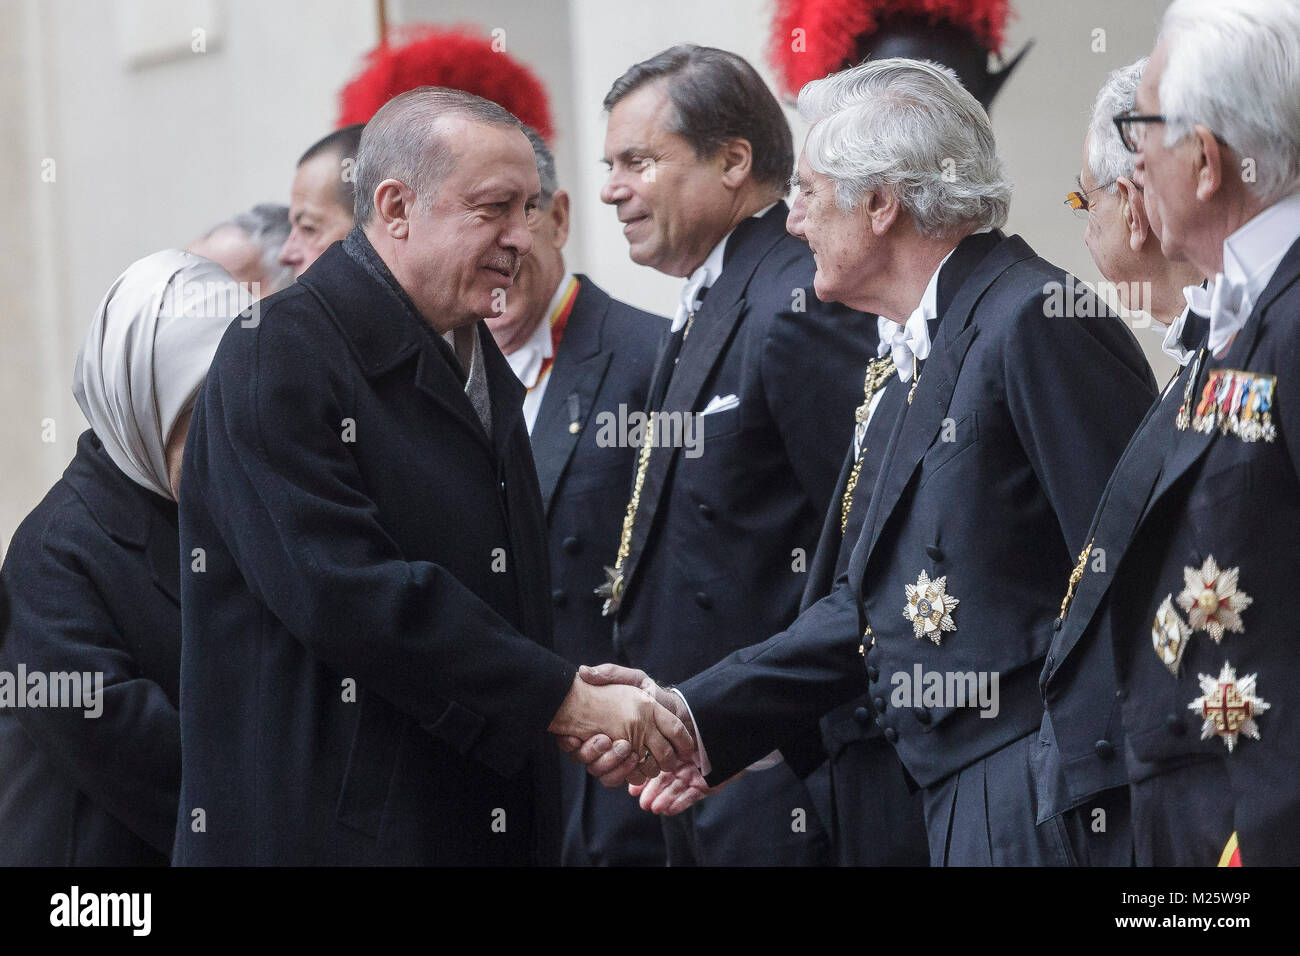 Vatican City, Vatican. 05th Feb, 2018. Turkey's President Recep Tayyip Erdogan is welcomed by Pope's Gentiluomini - Stock Image